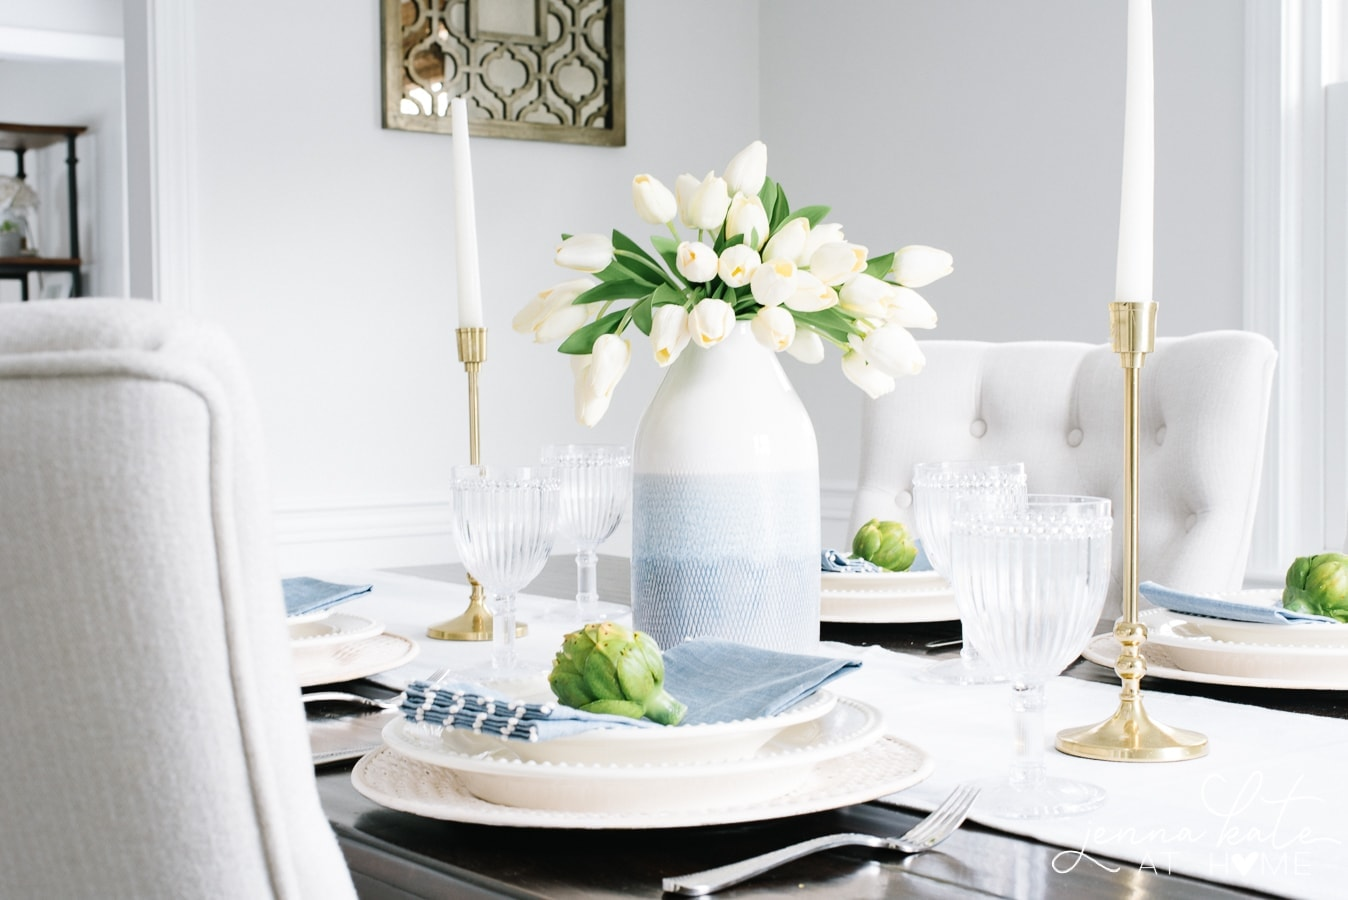 Classic white dishes for the spring tablescape